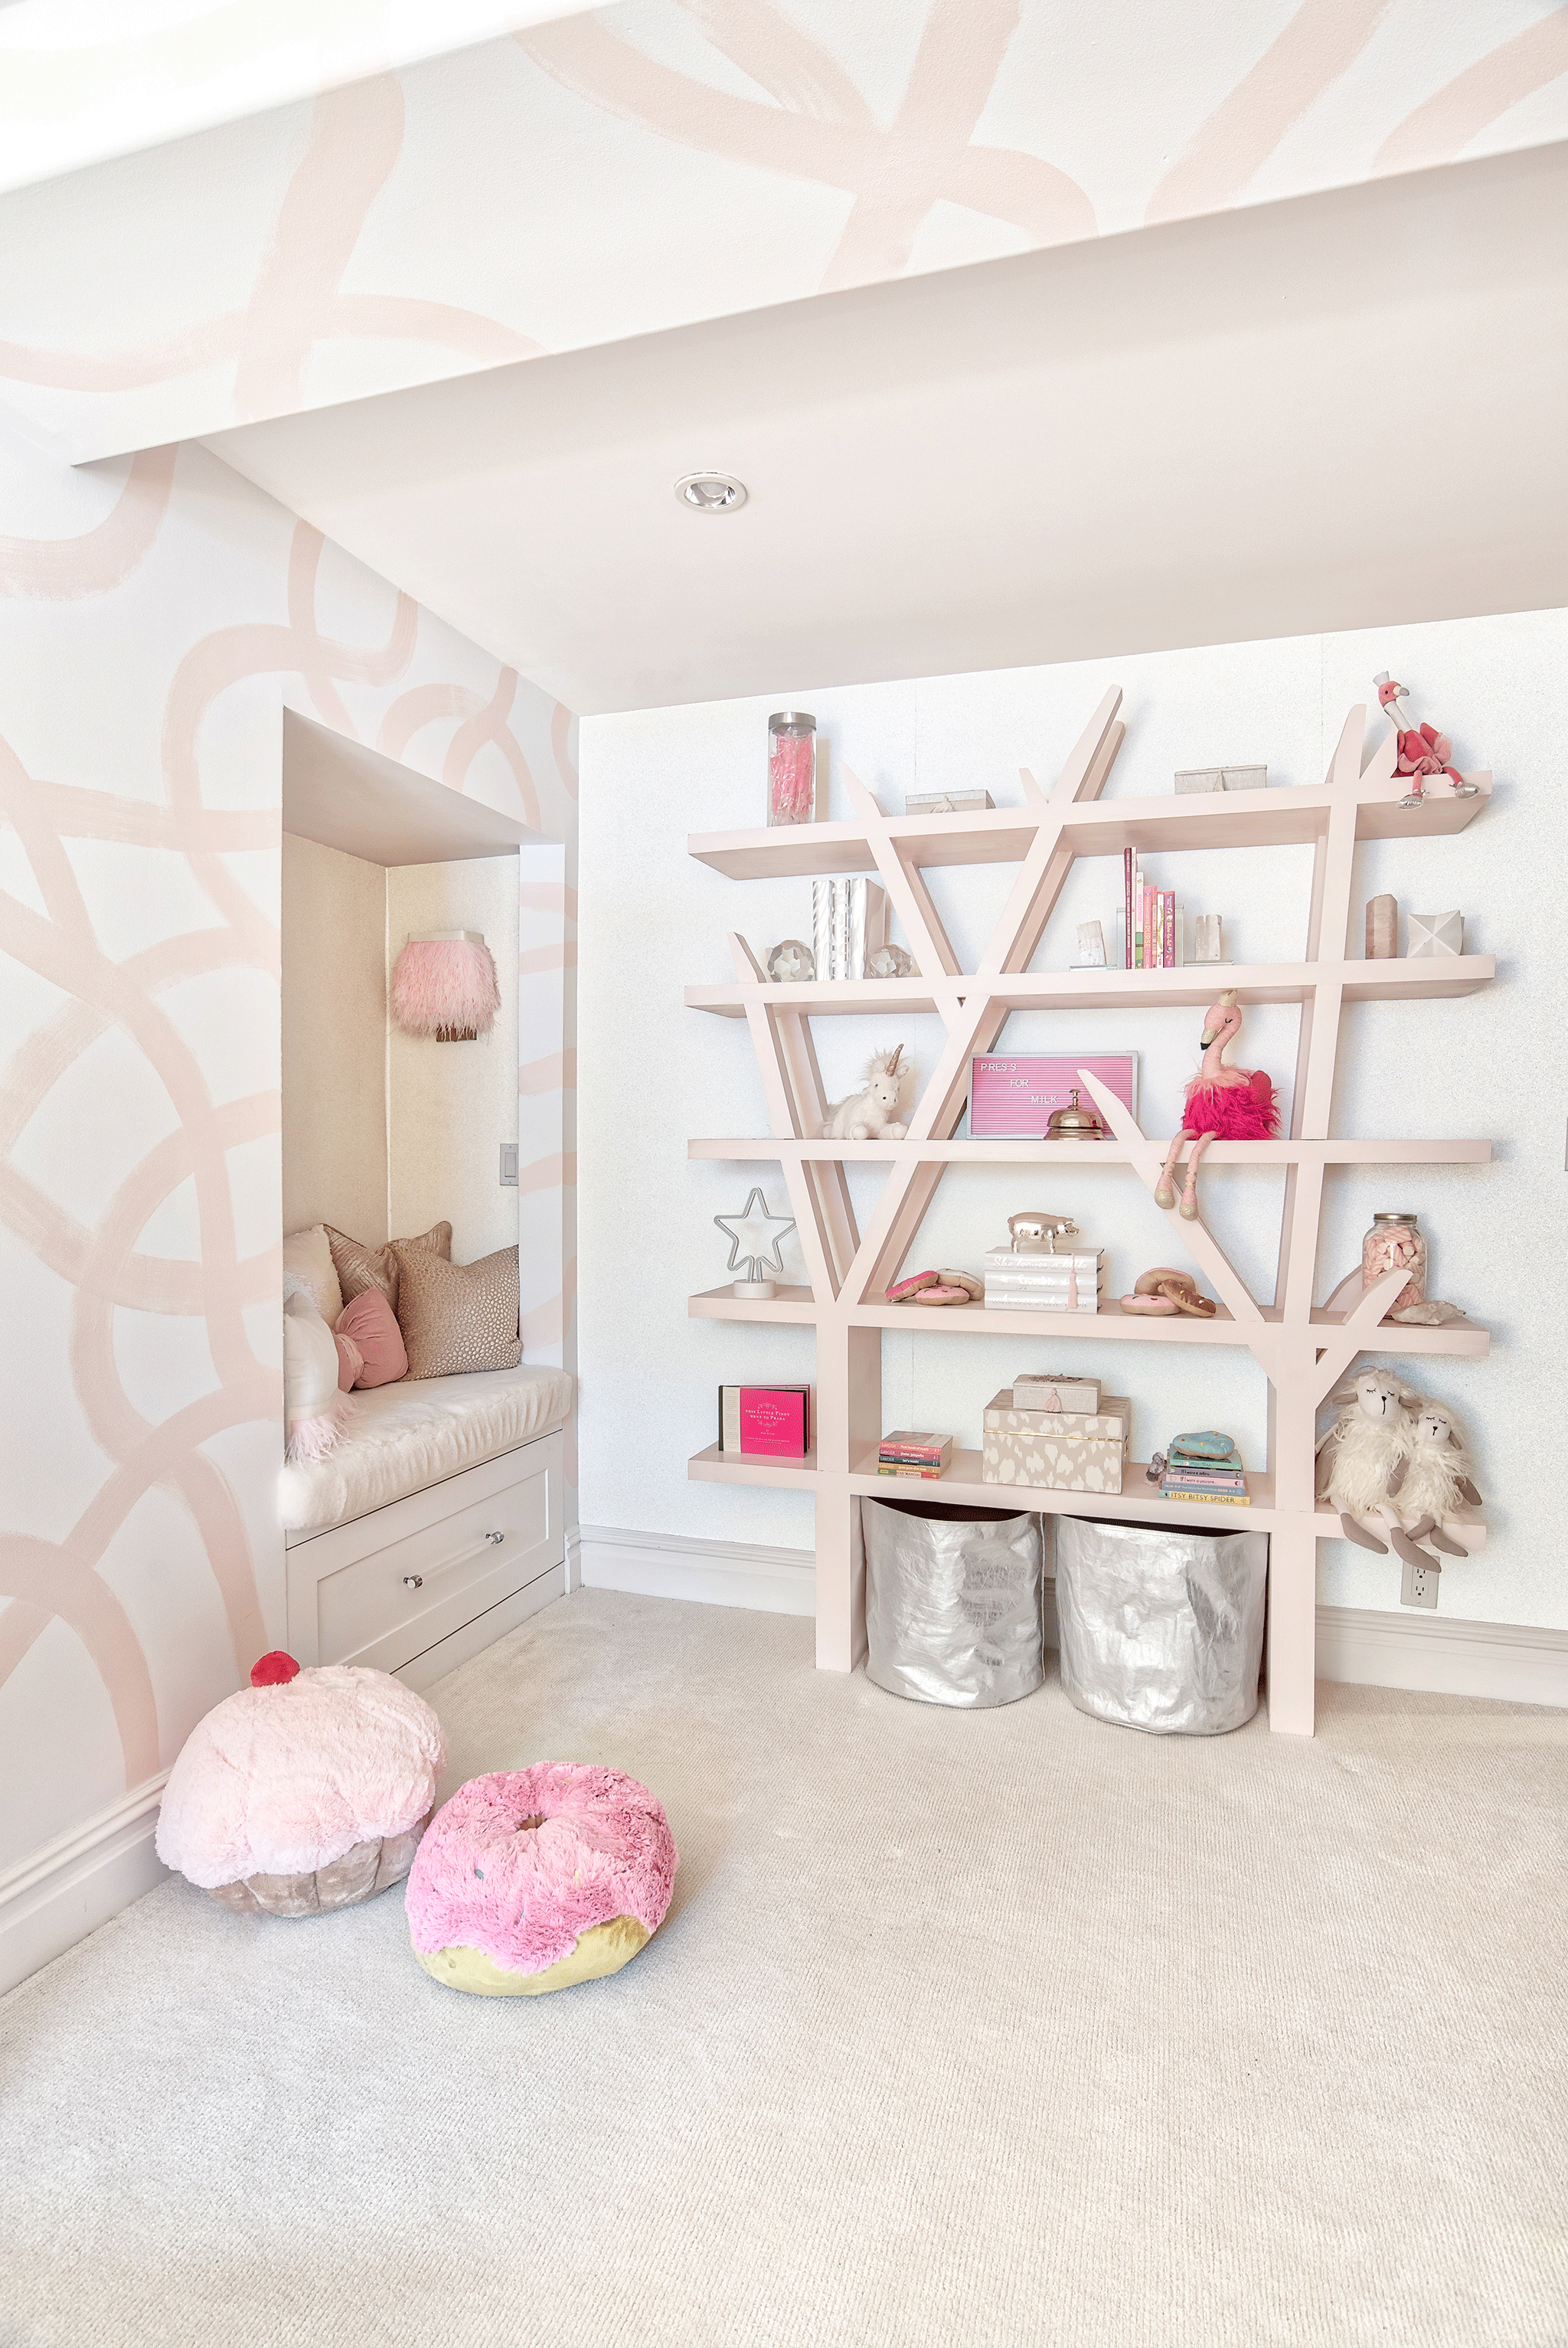 This Girl S Nursery Finds The Perfect Balance Between Cool And Cute Project Nursery Bedroom Decor Room Decor Bedroom Diy